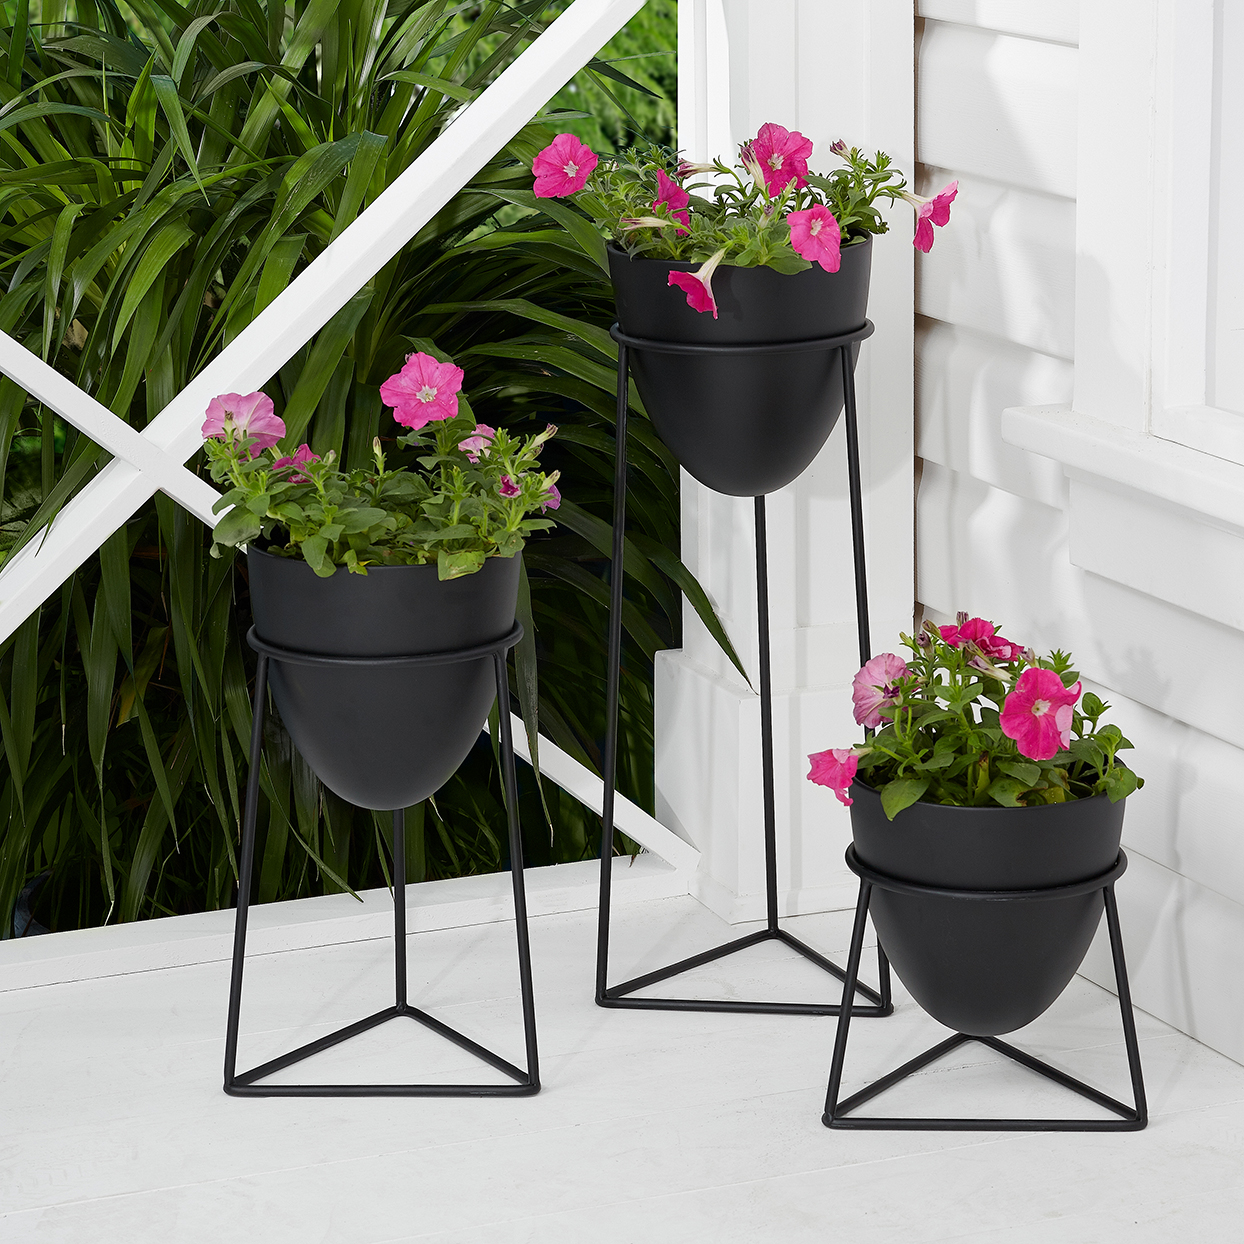 Mainstays Bullet 3-Piece Metal Planter Set with Stands